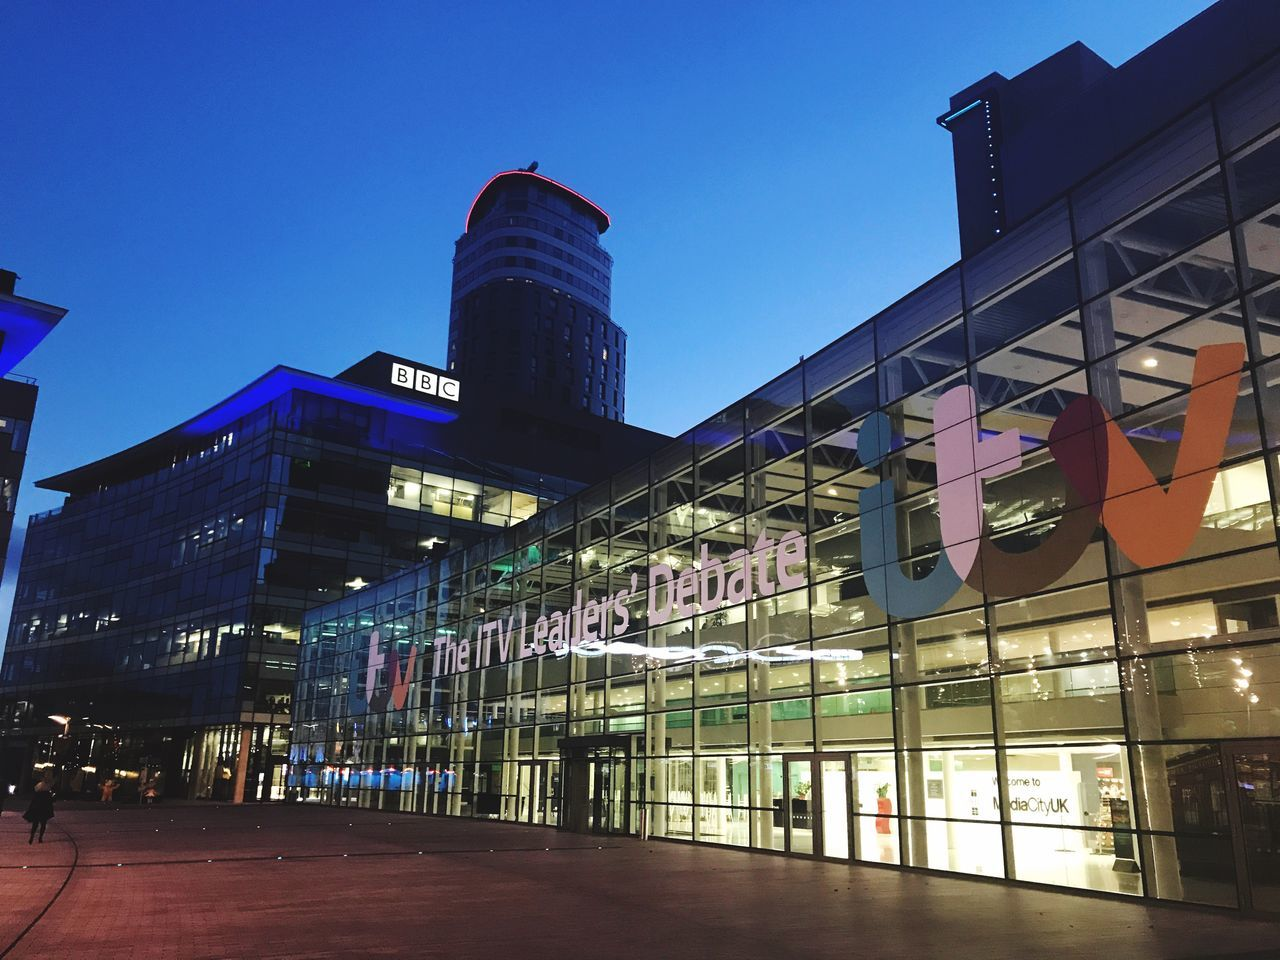 Architecture Built Structure Building Exterior Clear Sky City Outdoors Modern Blue Illuminated No People Modern Mediacityuk Night Day Travel Destinations Skyscraper Sky Manchester